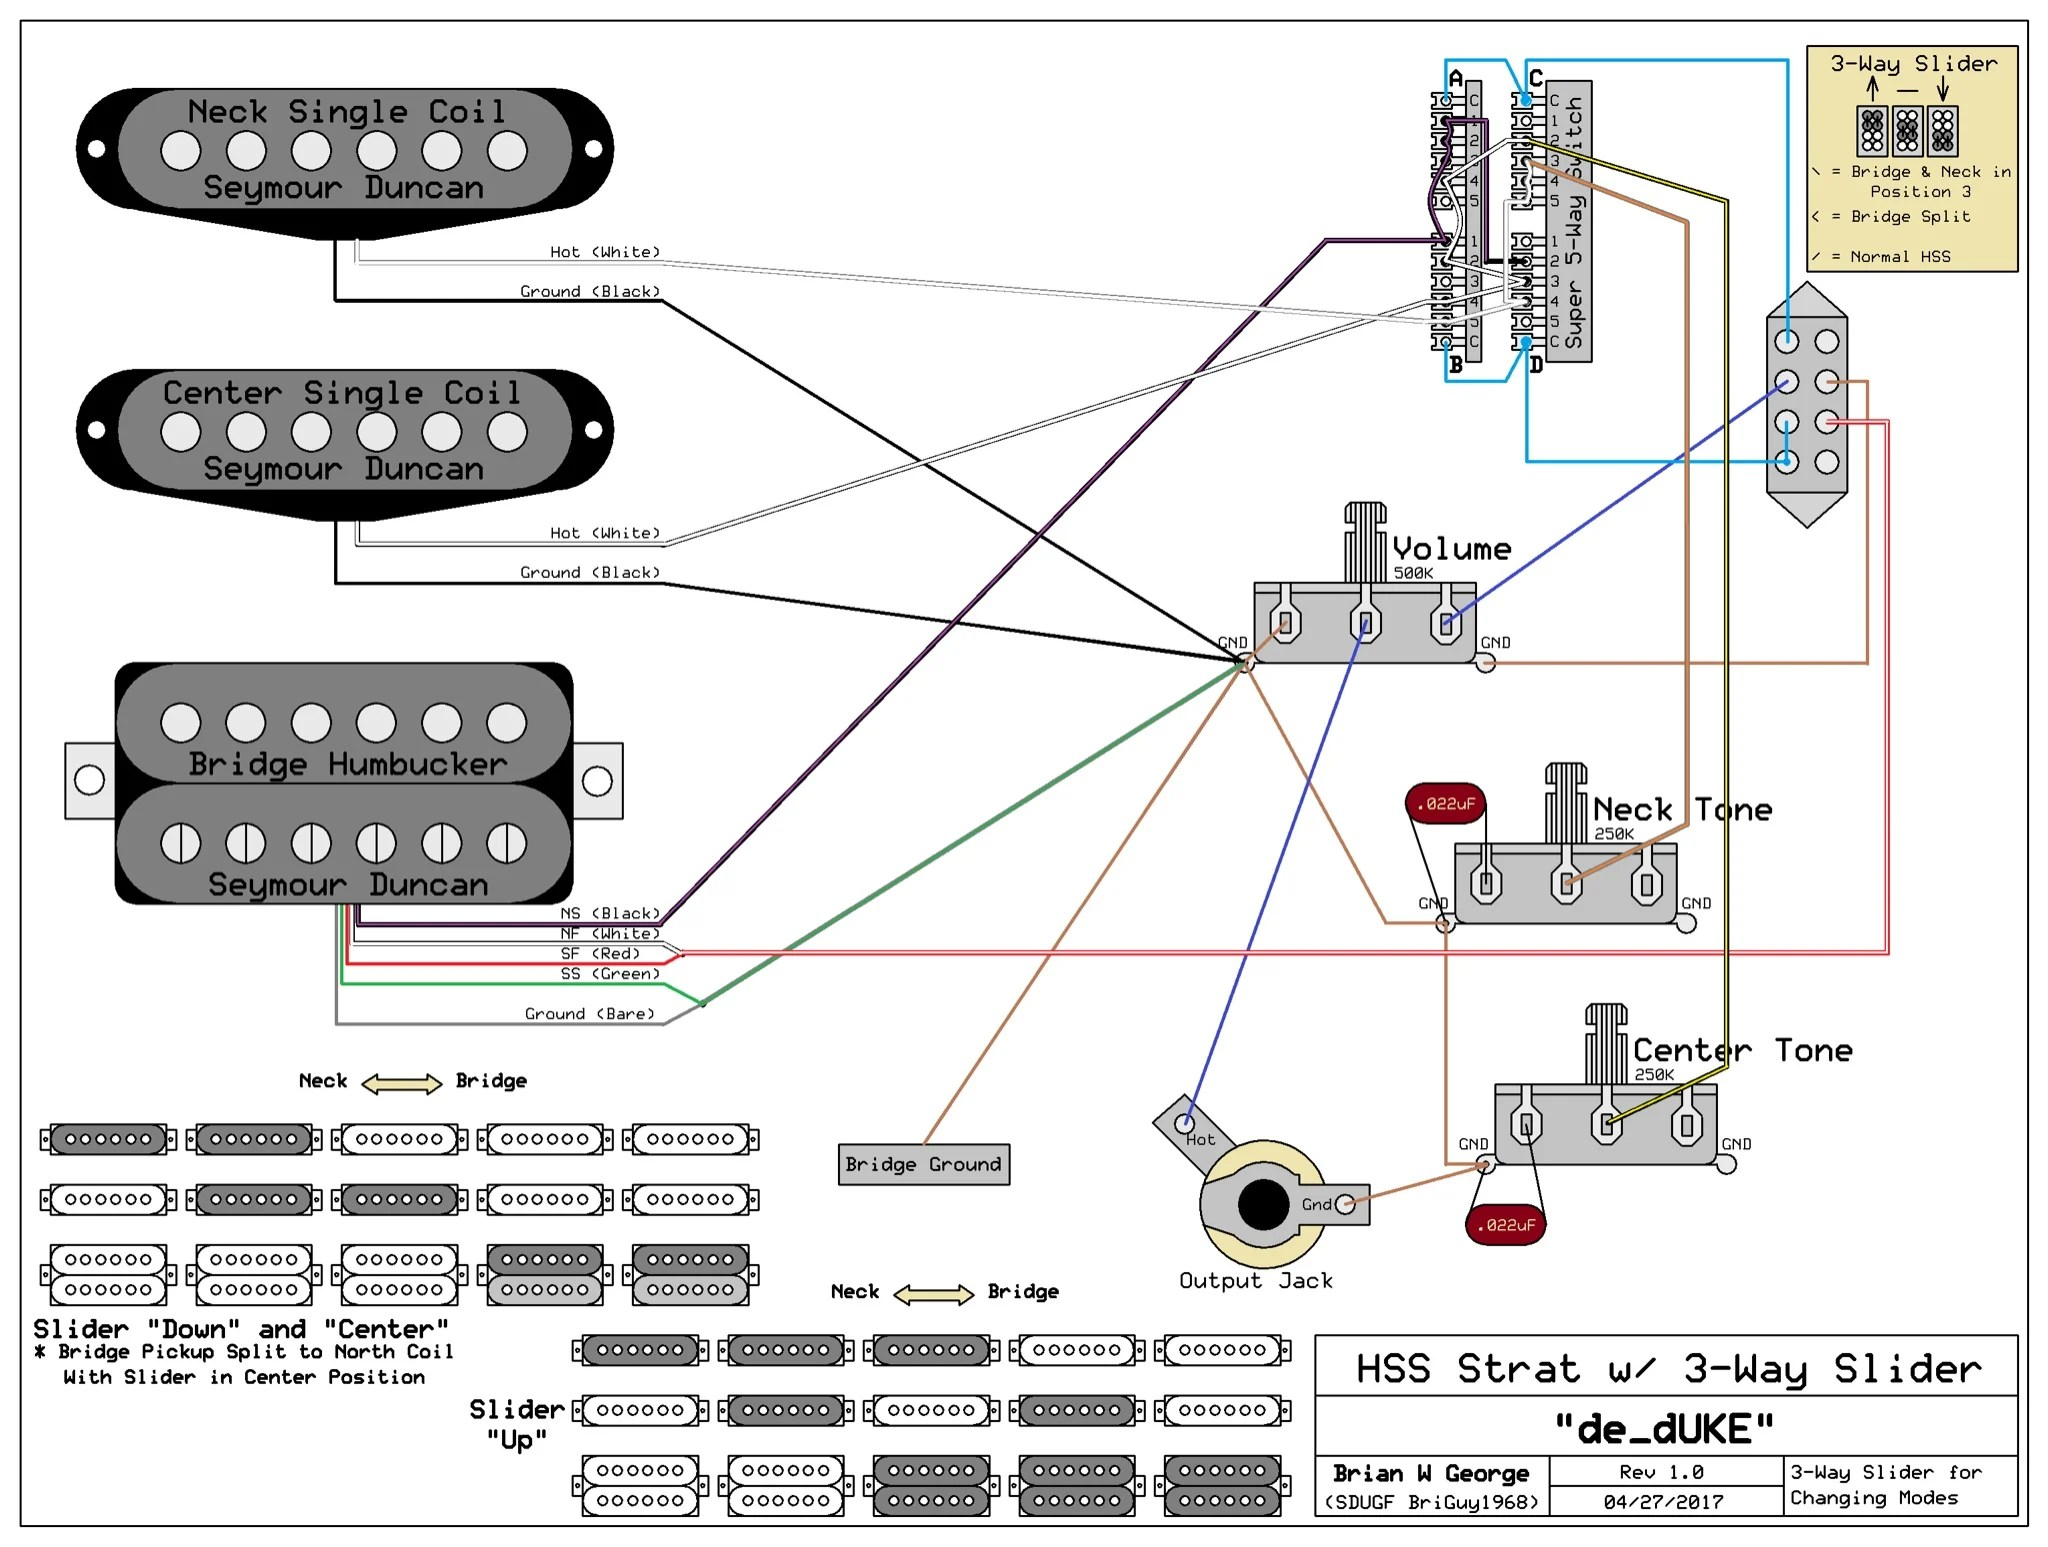 Beautiful Epiphone Wiring Schematics Photos - The Best Electrical ...